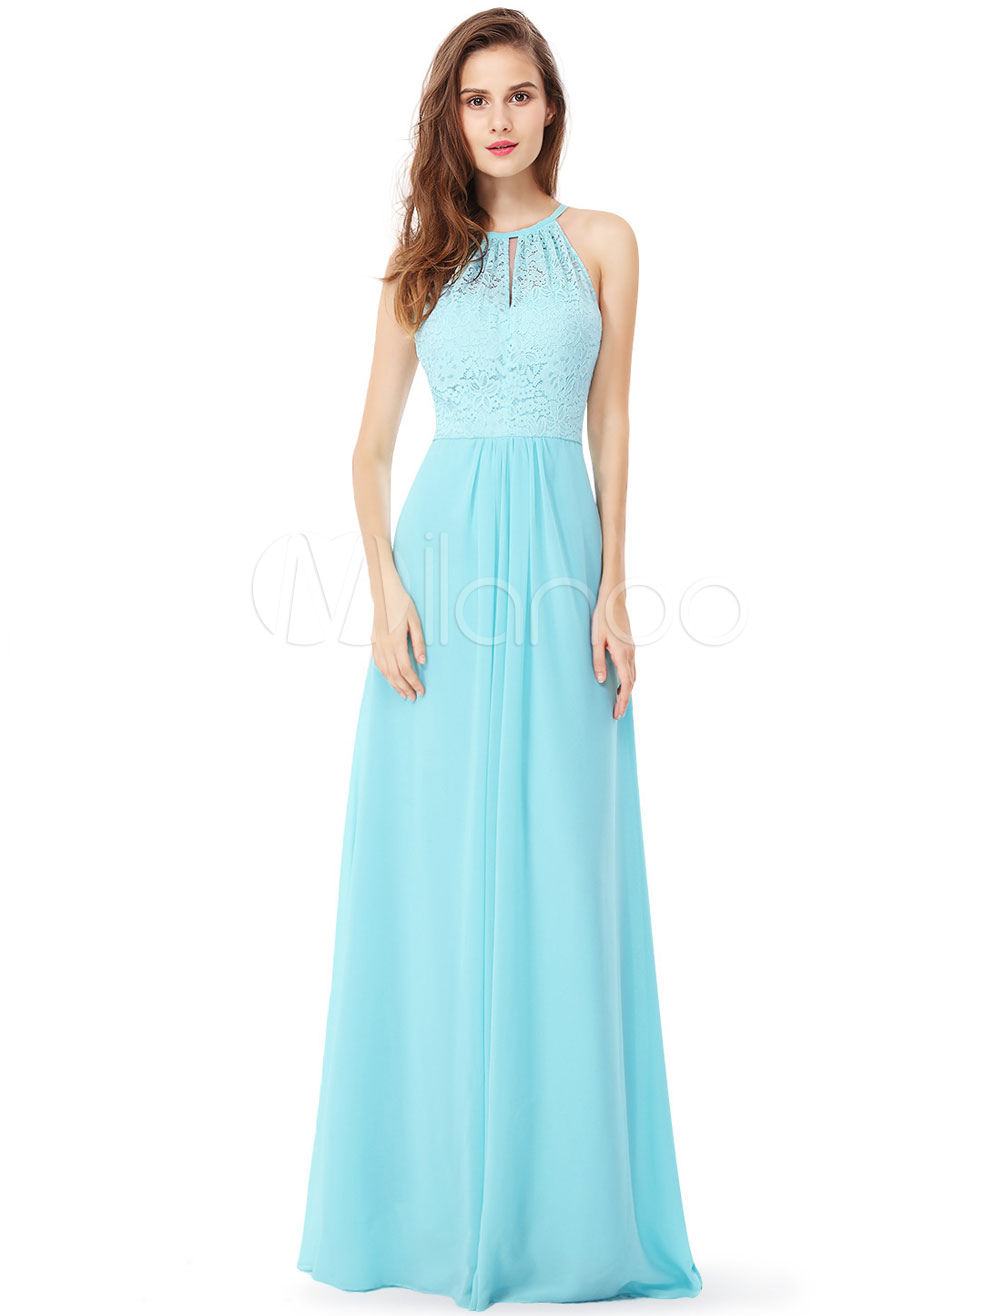 Lace Prom Dress Halter A Line Occasion Dress White Sleeveless Floor Length Party Dress (Wedding Prom Dresses) photo